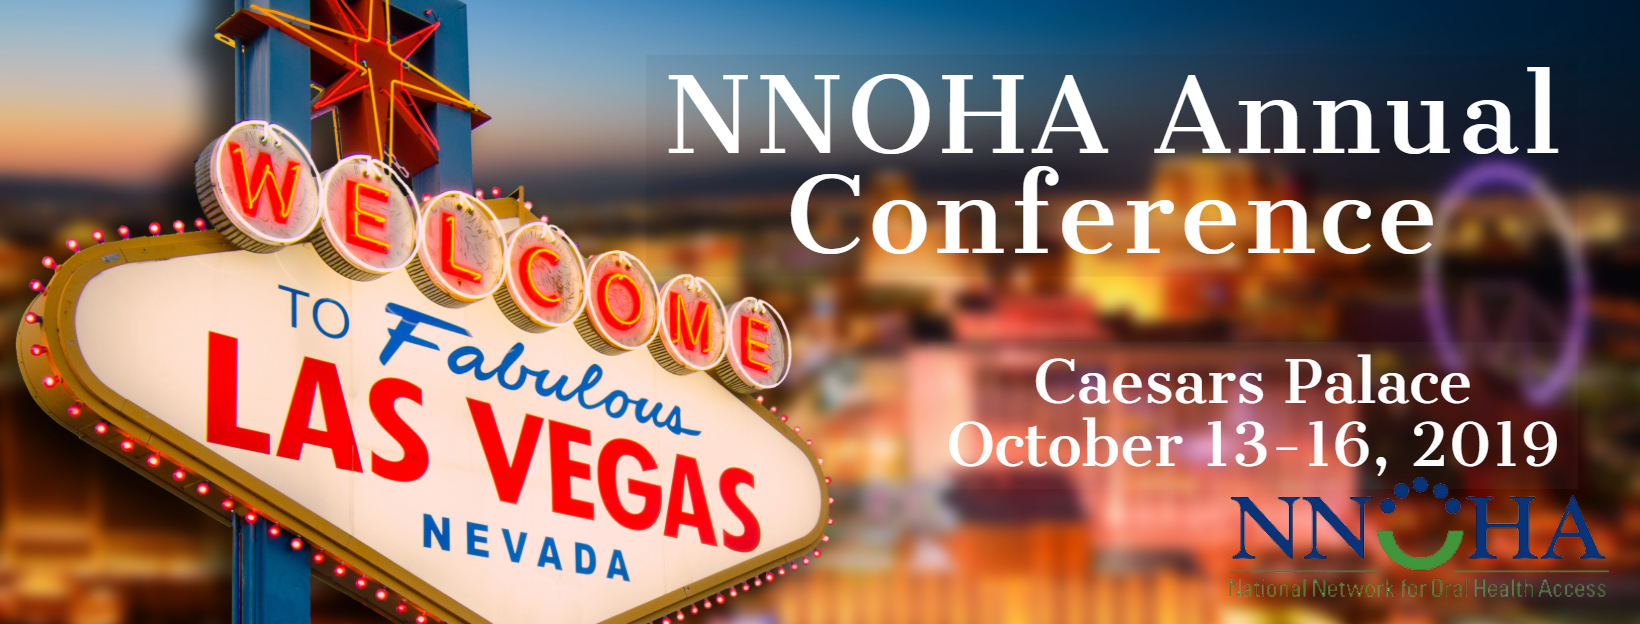 2019 NNOHA Annual Conference